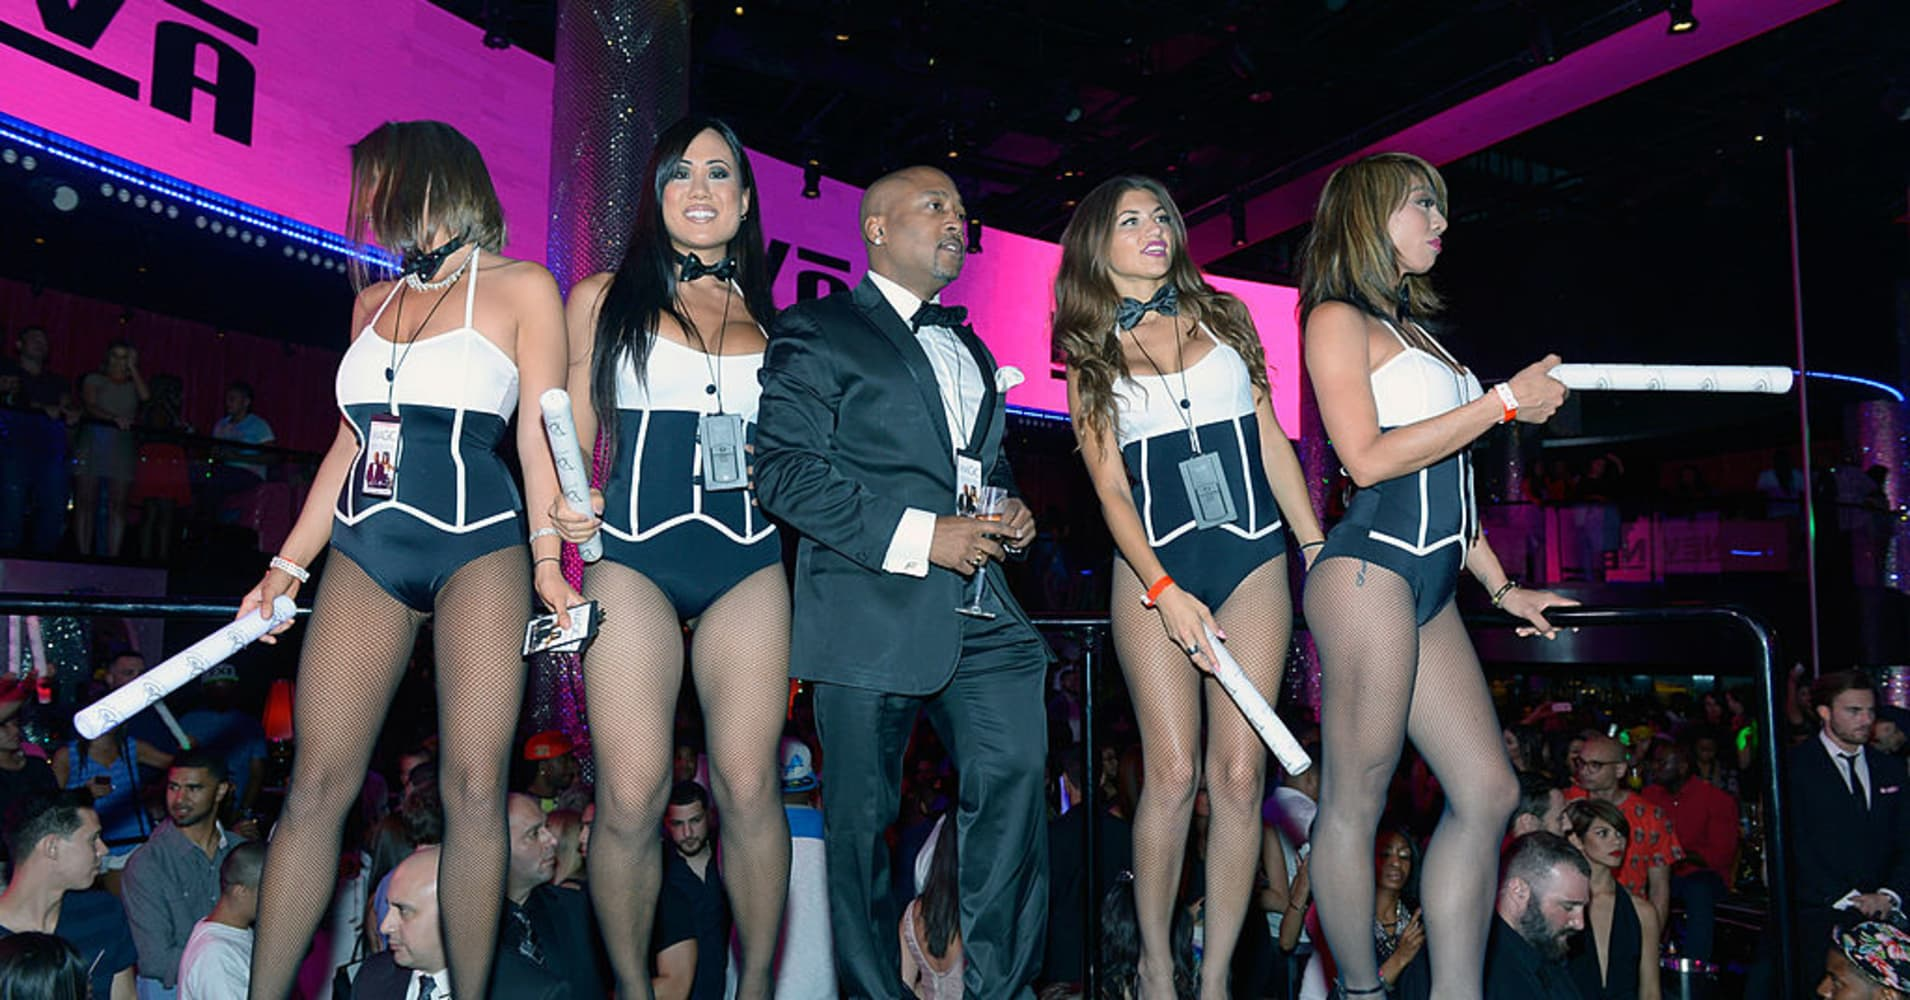 Daymond John celebrating at Drai's Beachclub, the Nightclub at The Cromwell Las Vegas.